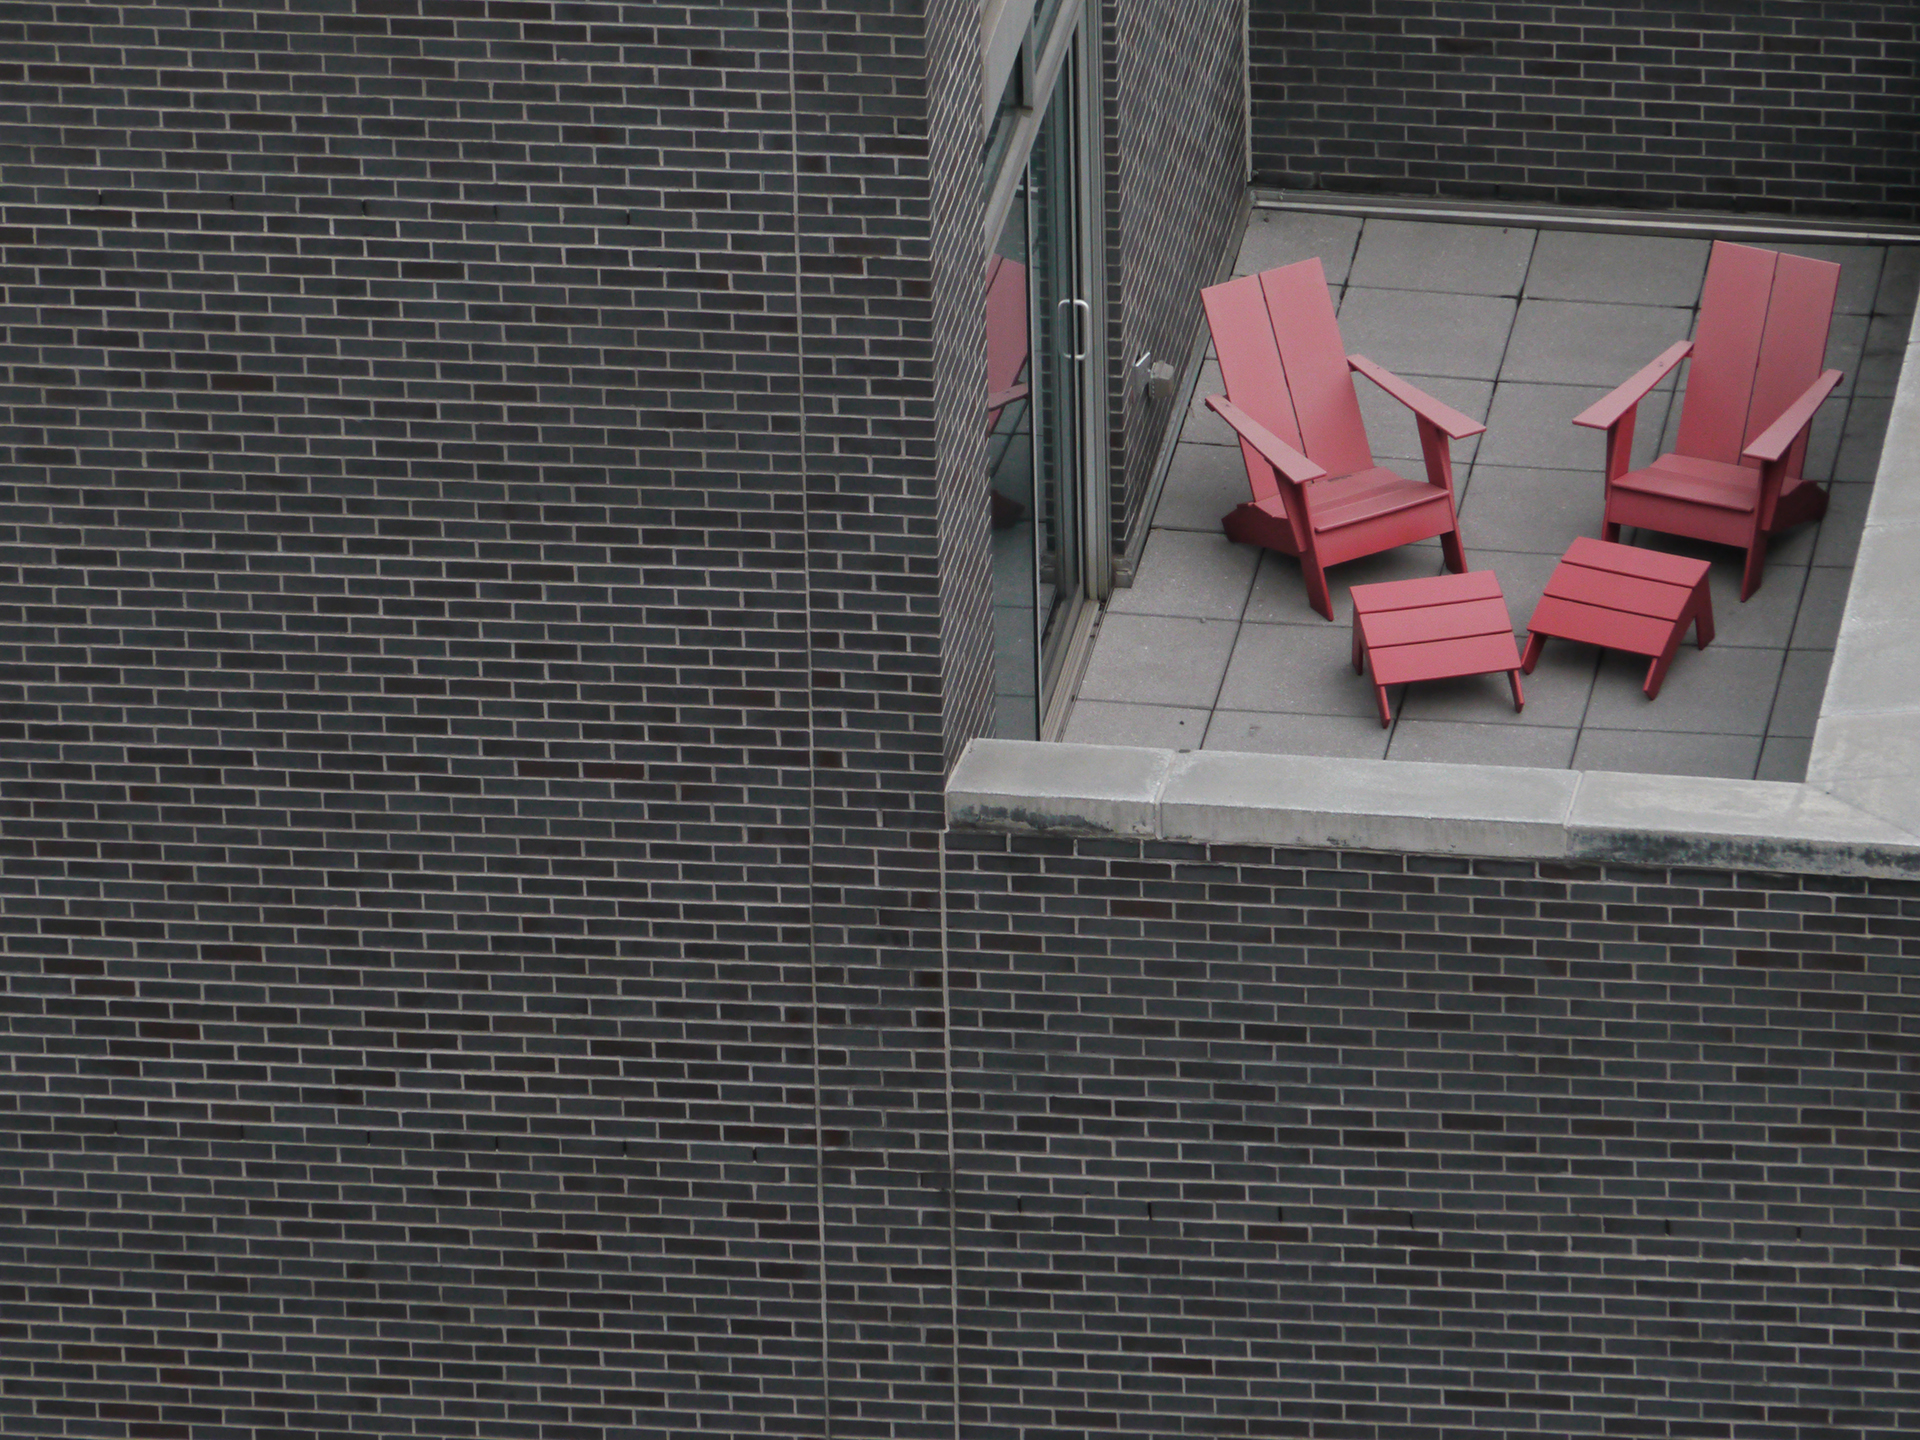 35_pink_chairs_eauer